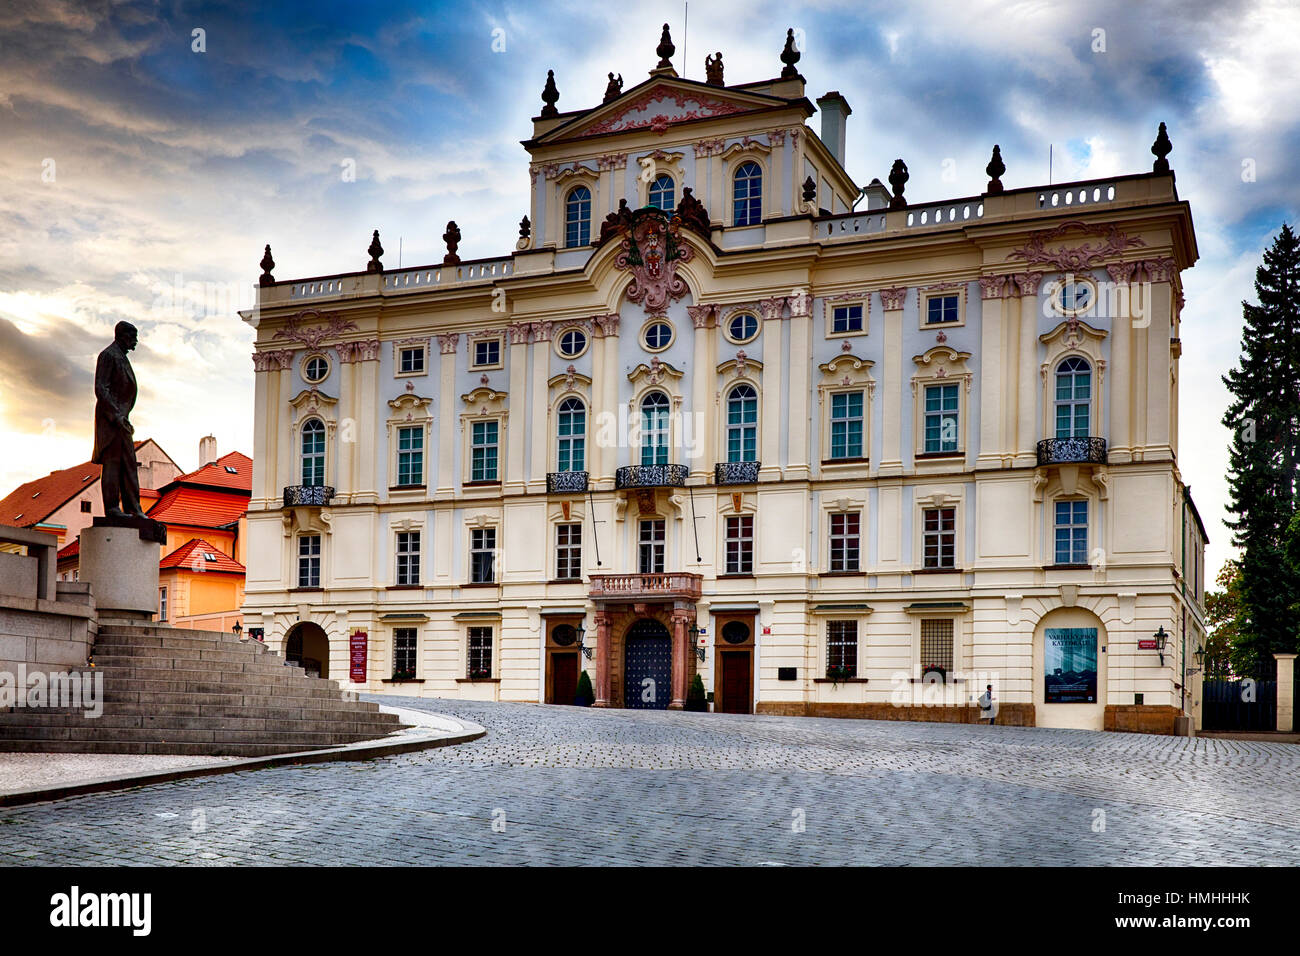 View of a National Gallery Buildinhg of Prague, Stemberg Palace,  Czech Republic - Stock Image